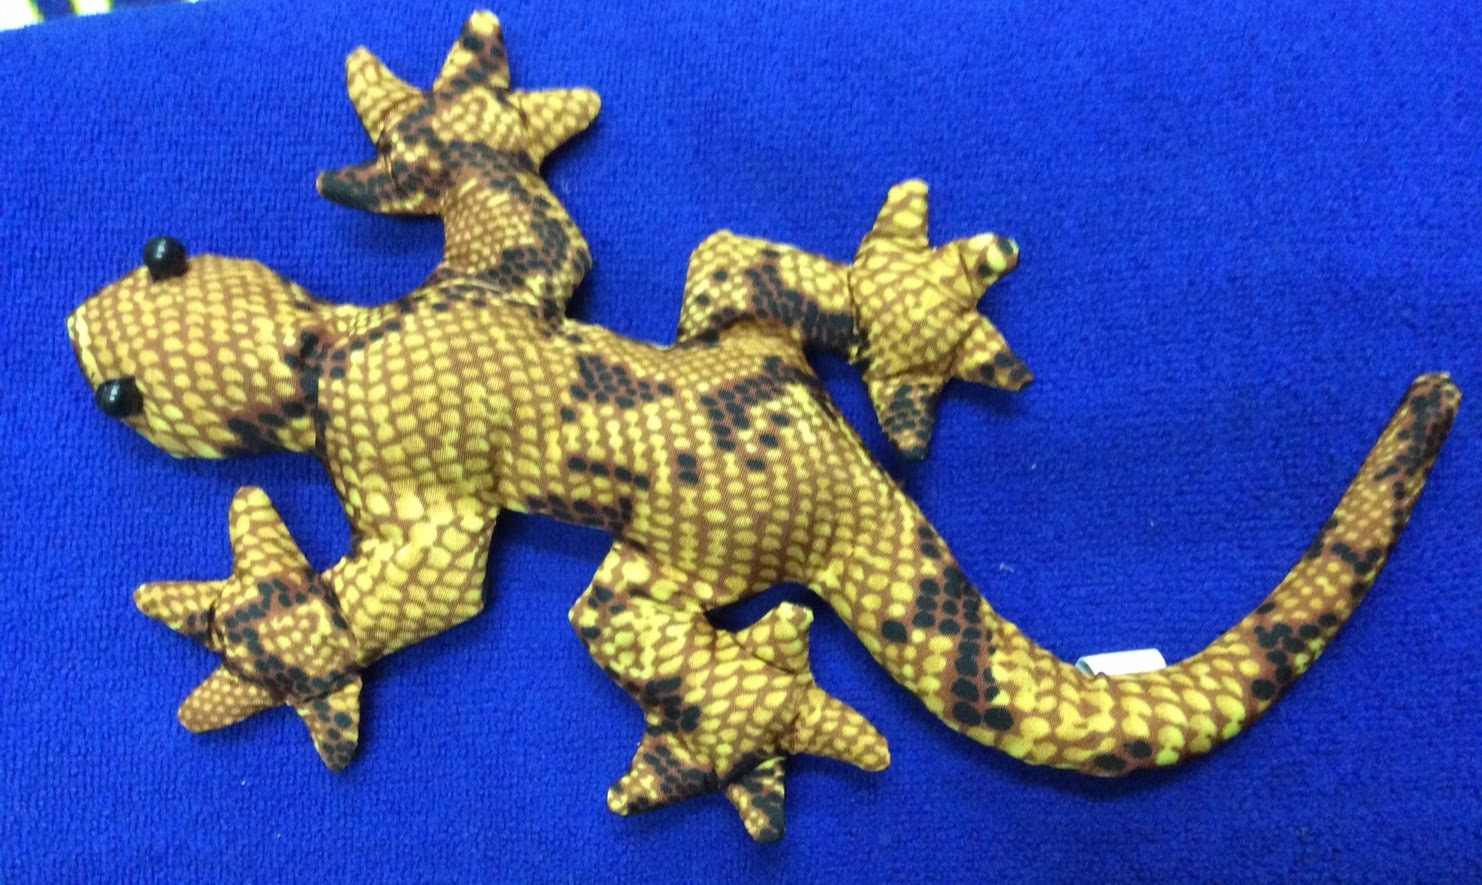 Fabric sand dolls-Gecko